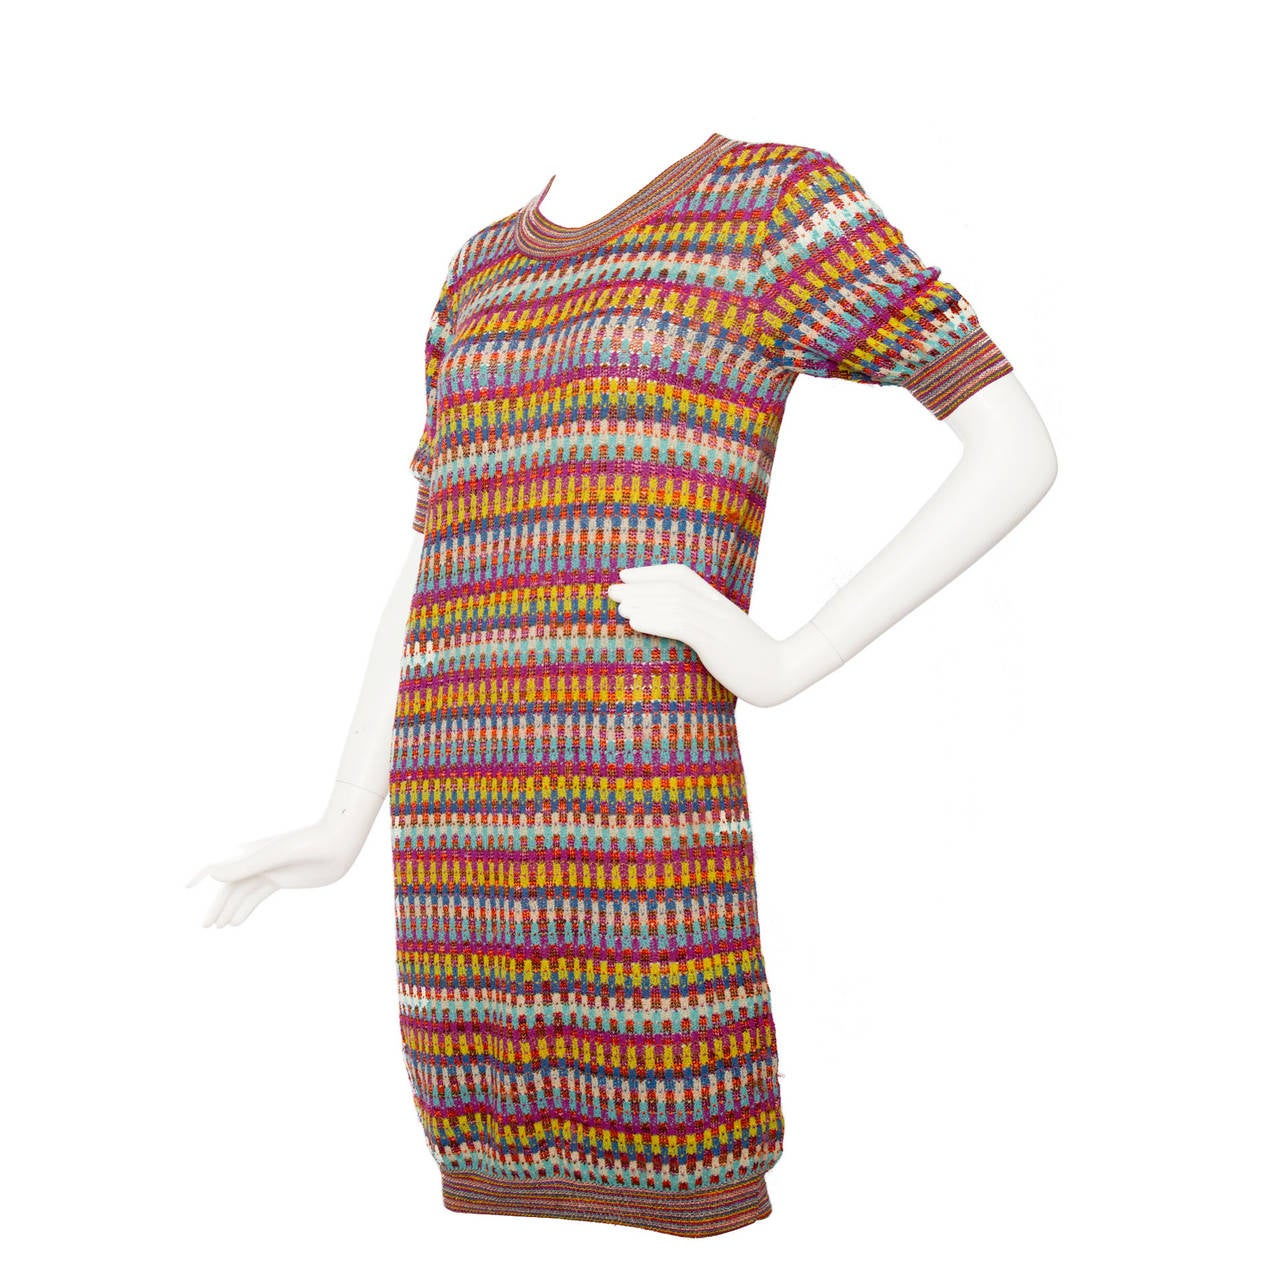 1980s Missoni Knitted Multicolour Dress